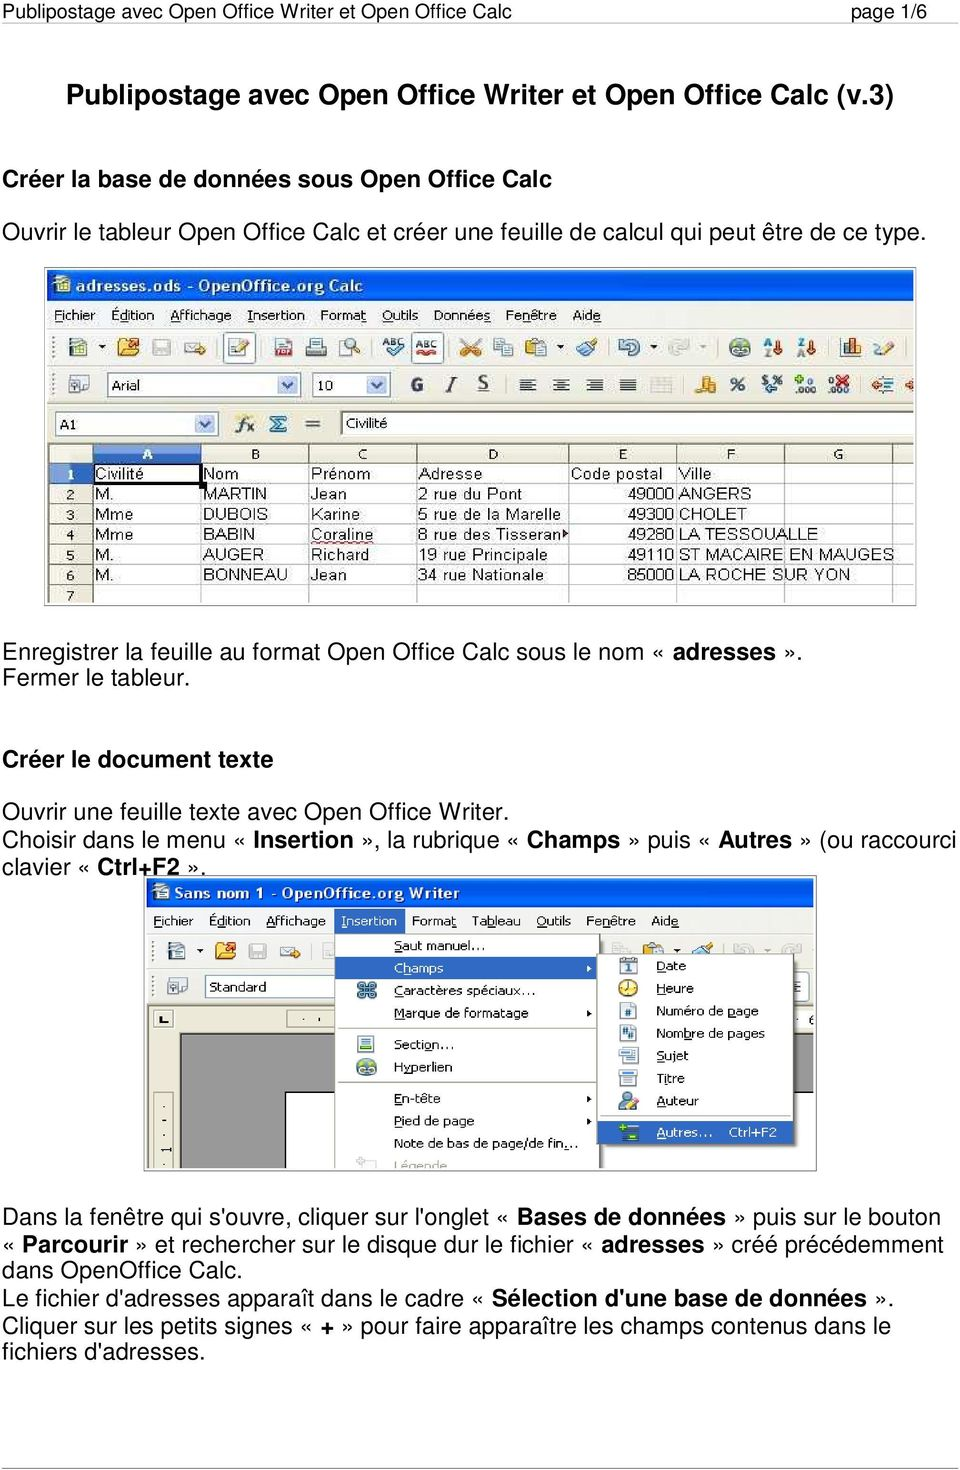 Publipostage avec open office writer et open office calc - Comment faire un publipostage sur open office ...